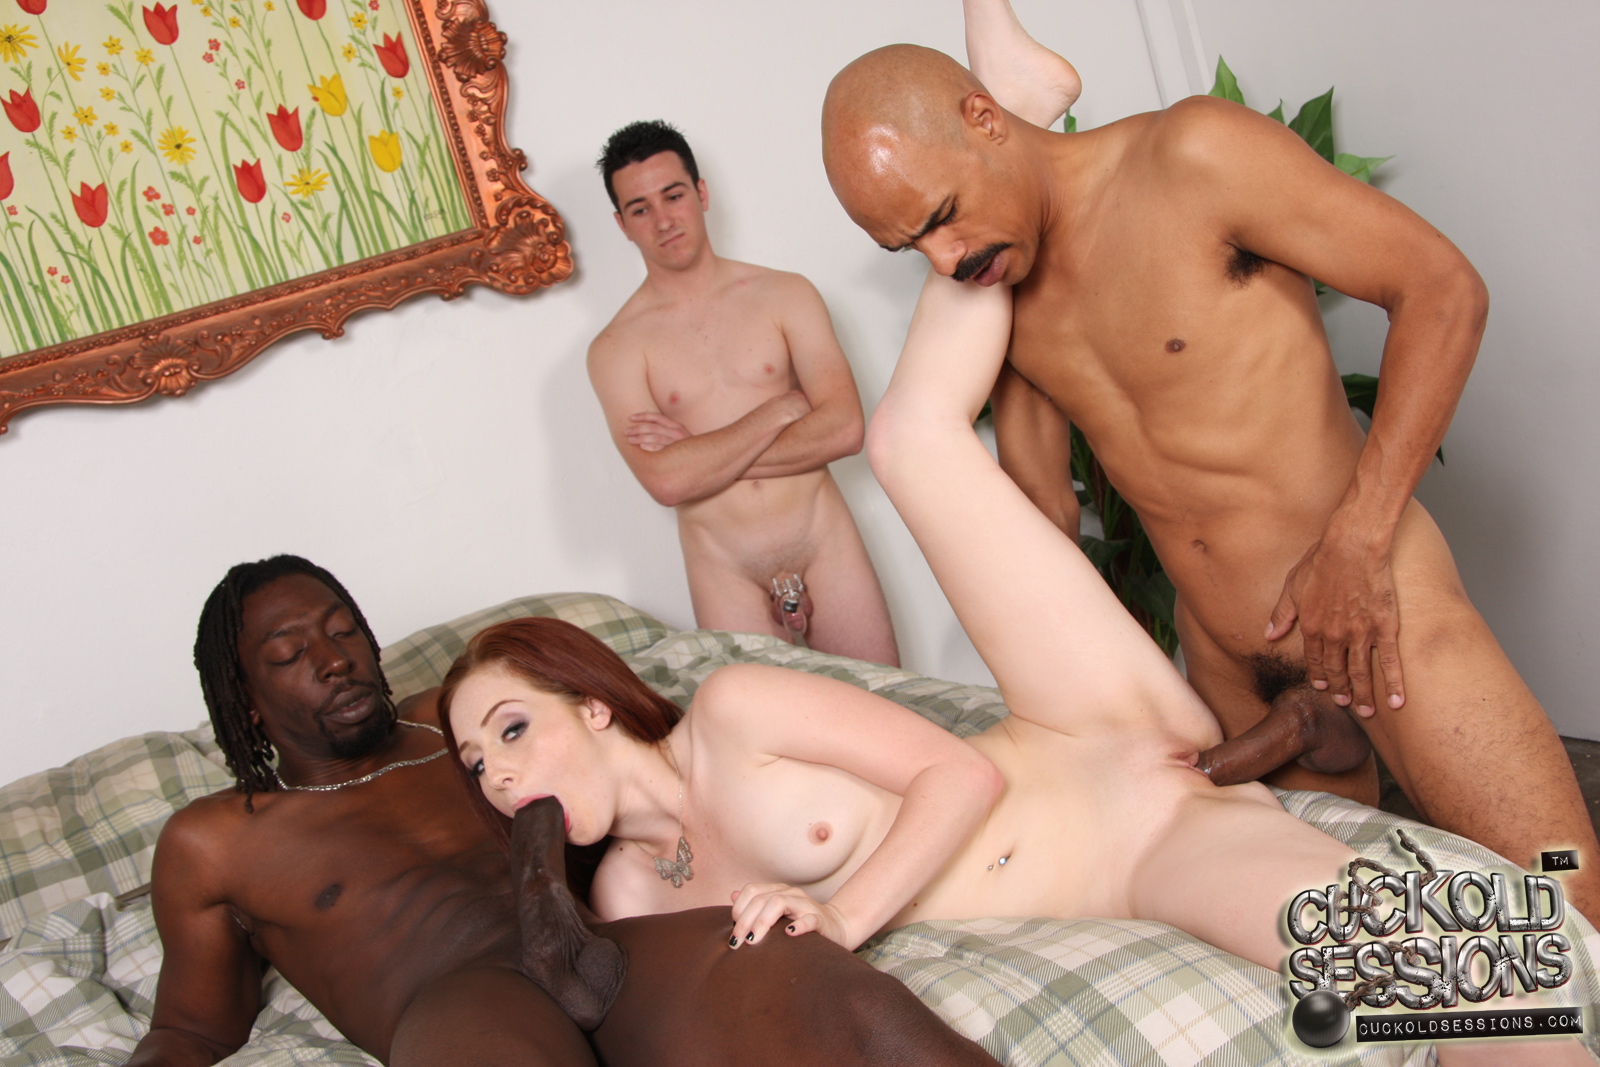 galleries cuckoldsessions content cameron love pic 21